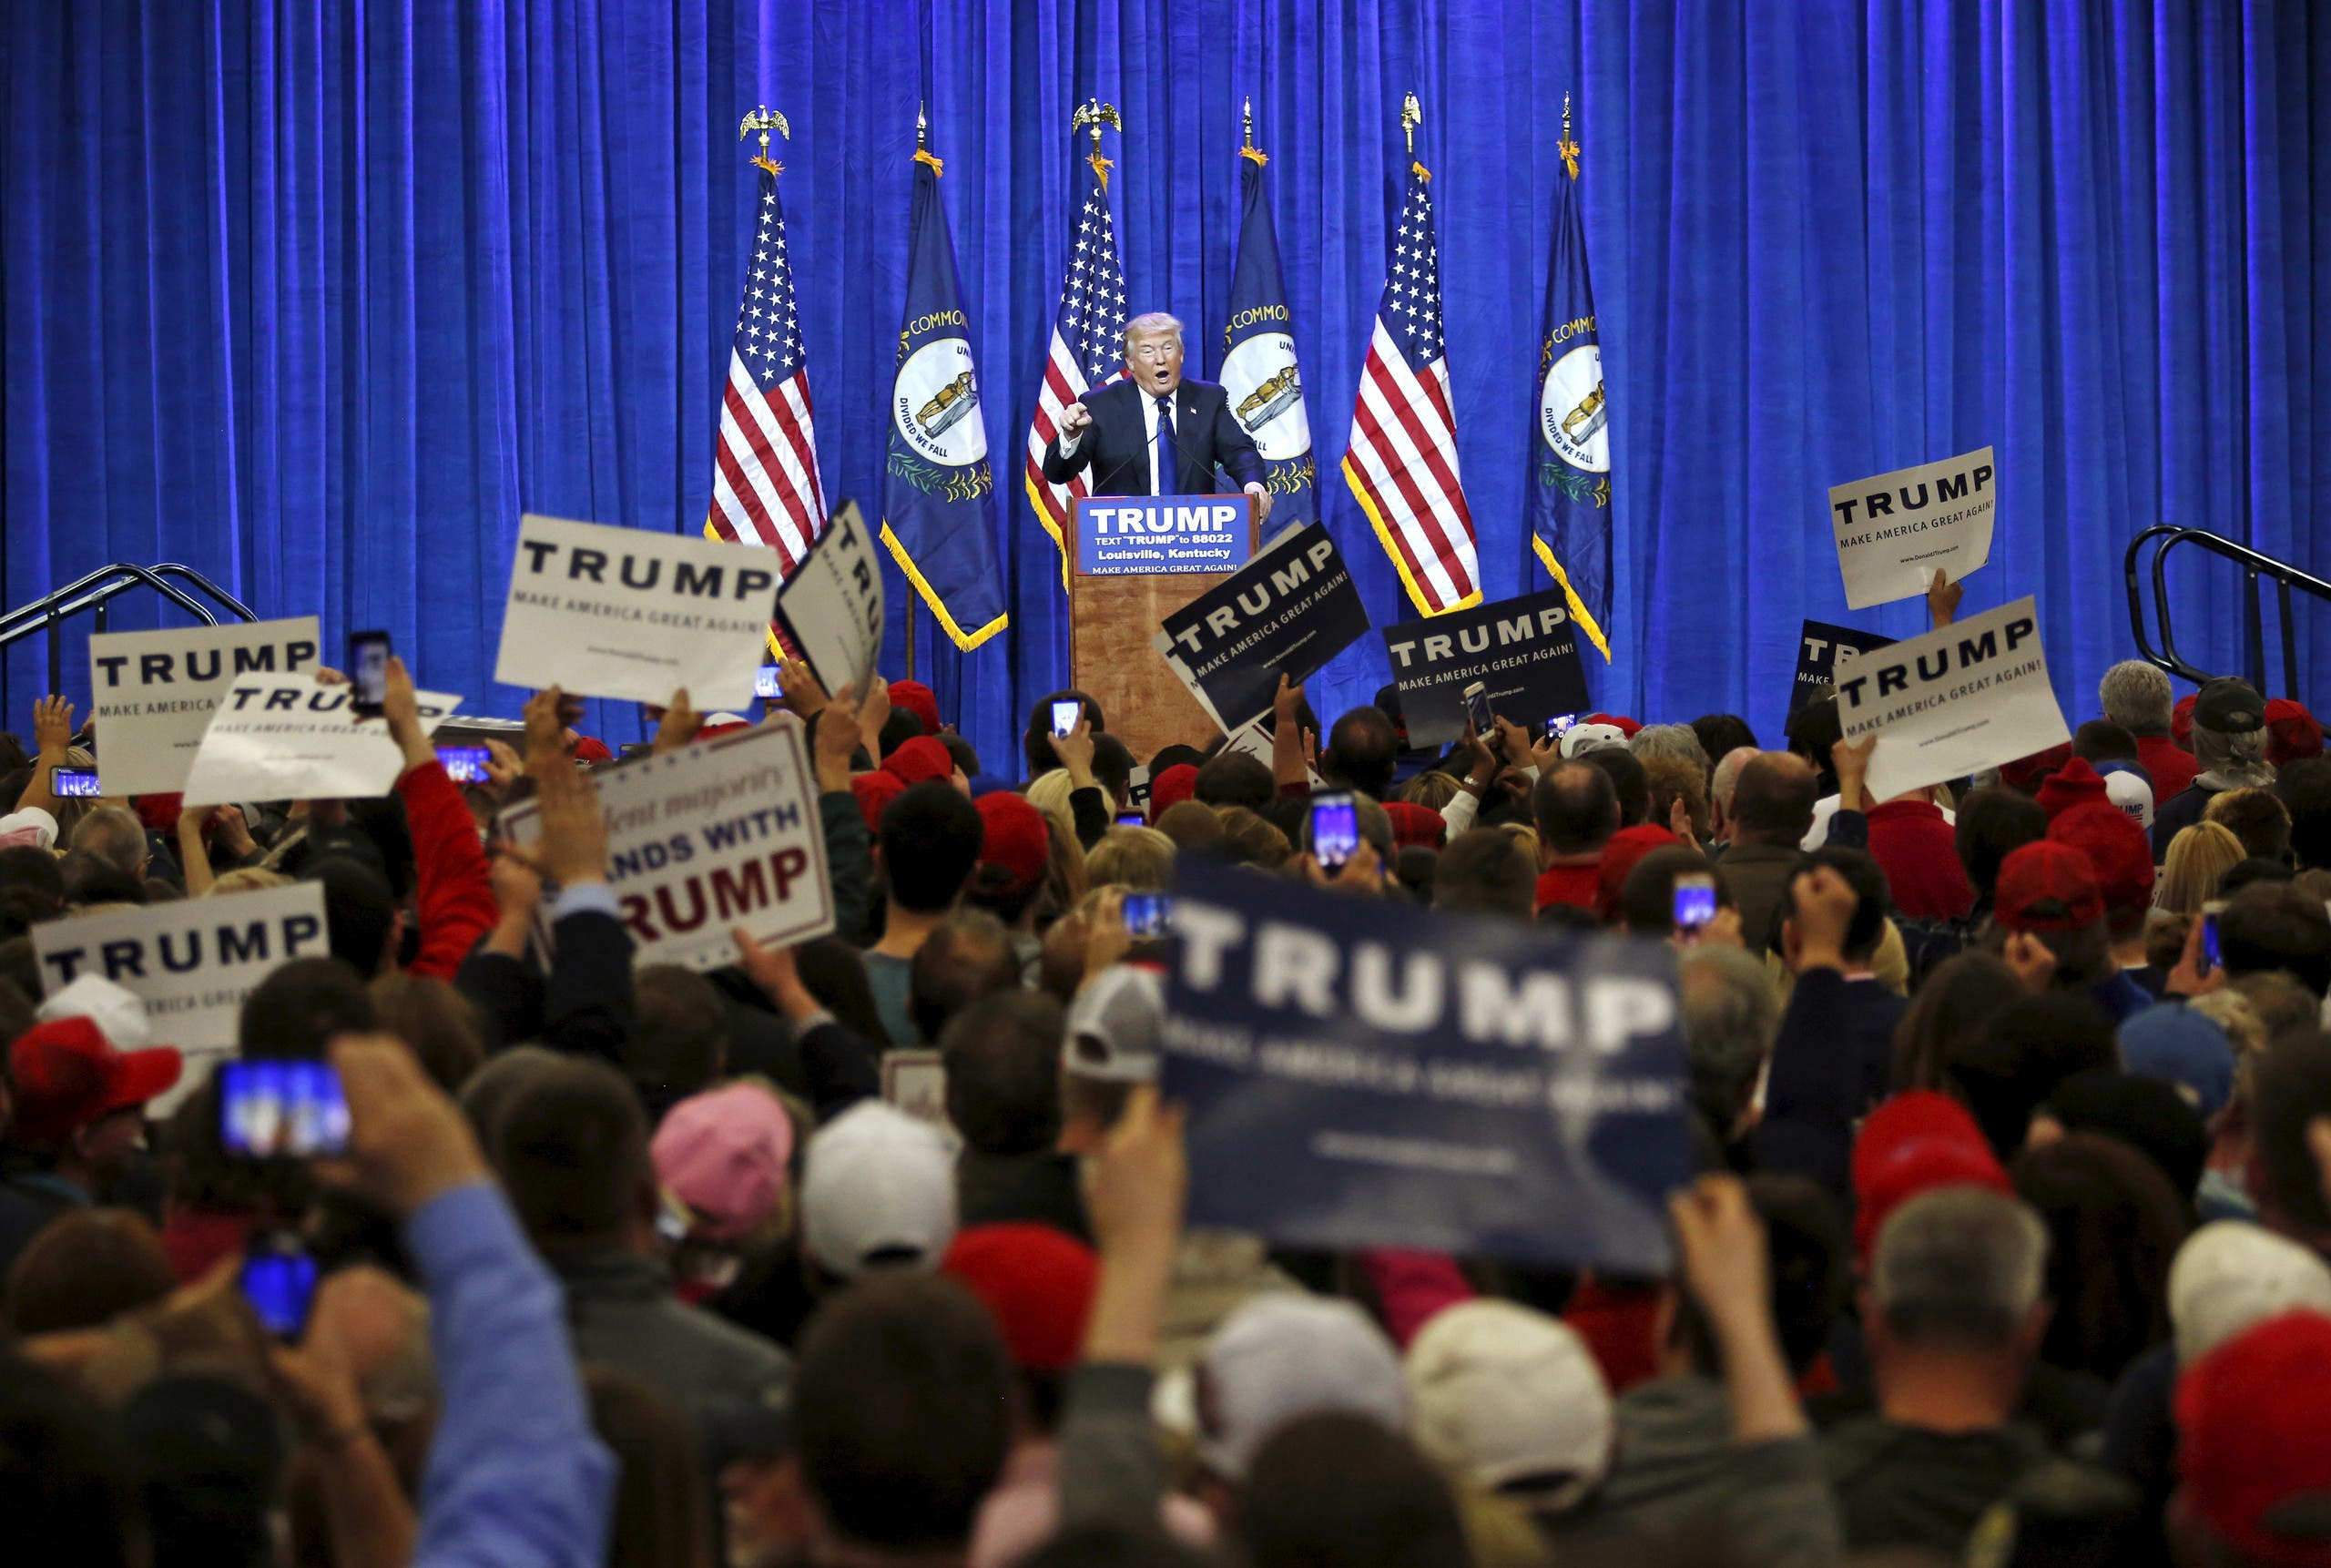 Republican U.S. presidential candidate Donald Trump speaks to supporters at a Super Tuesday campaign rally in Louisville, Kentucky March 1, 2016.